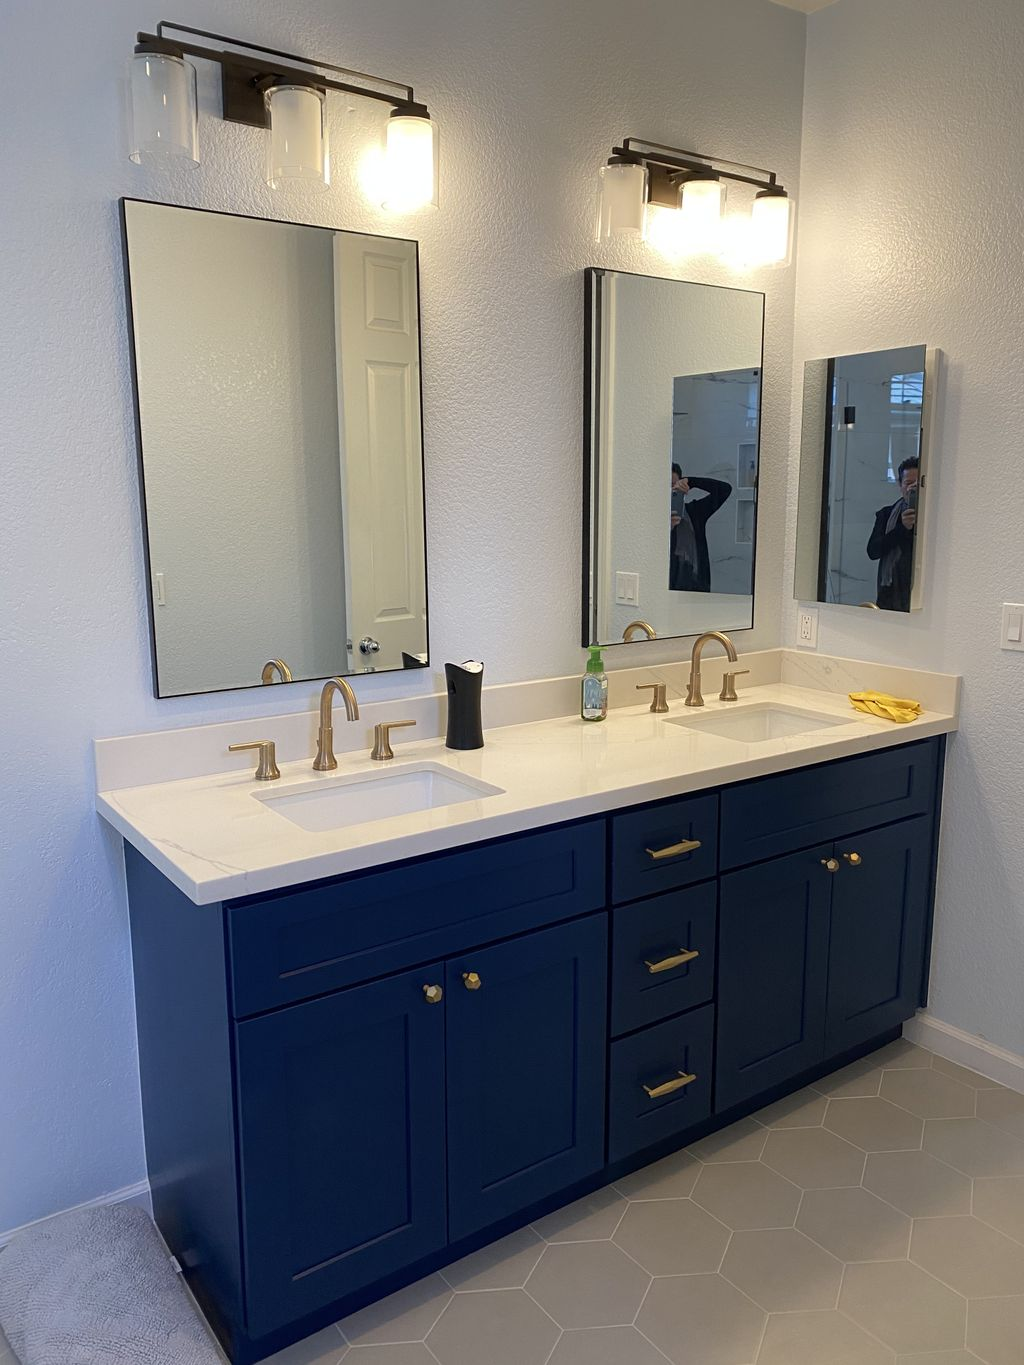 Full bathroom remodeling add free stand tub